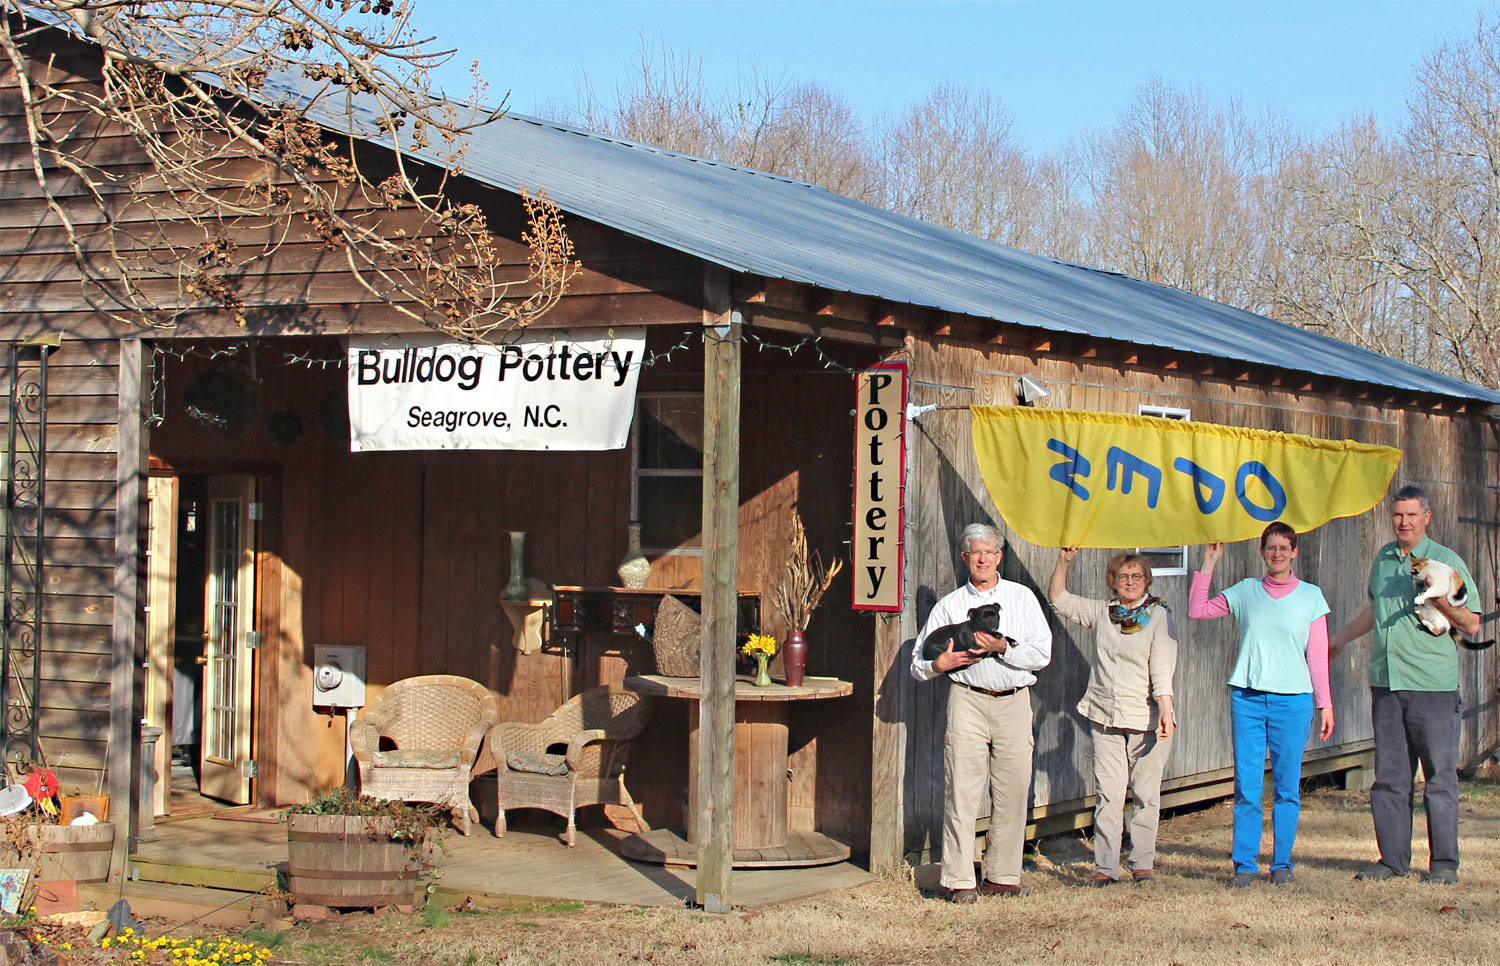 Visit US at our Seagrove Pottery - Bulldog Pottery - we look forward to talking with you!